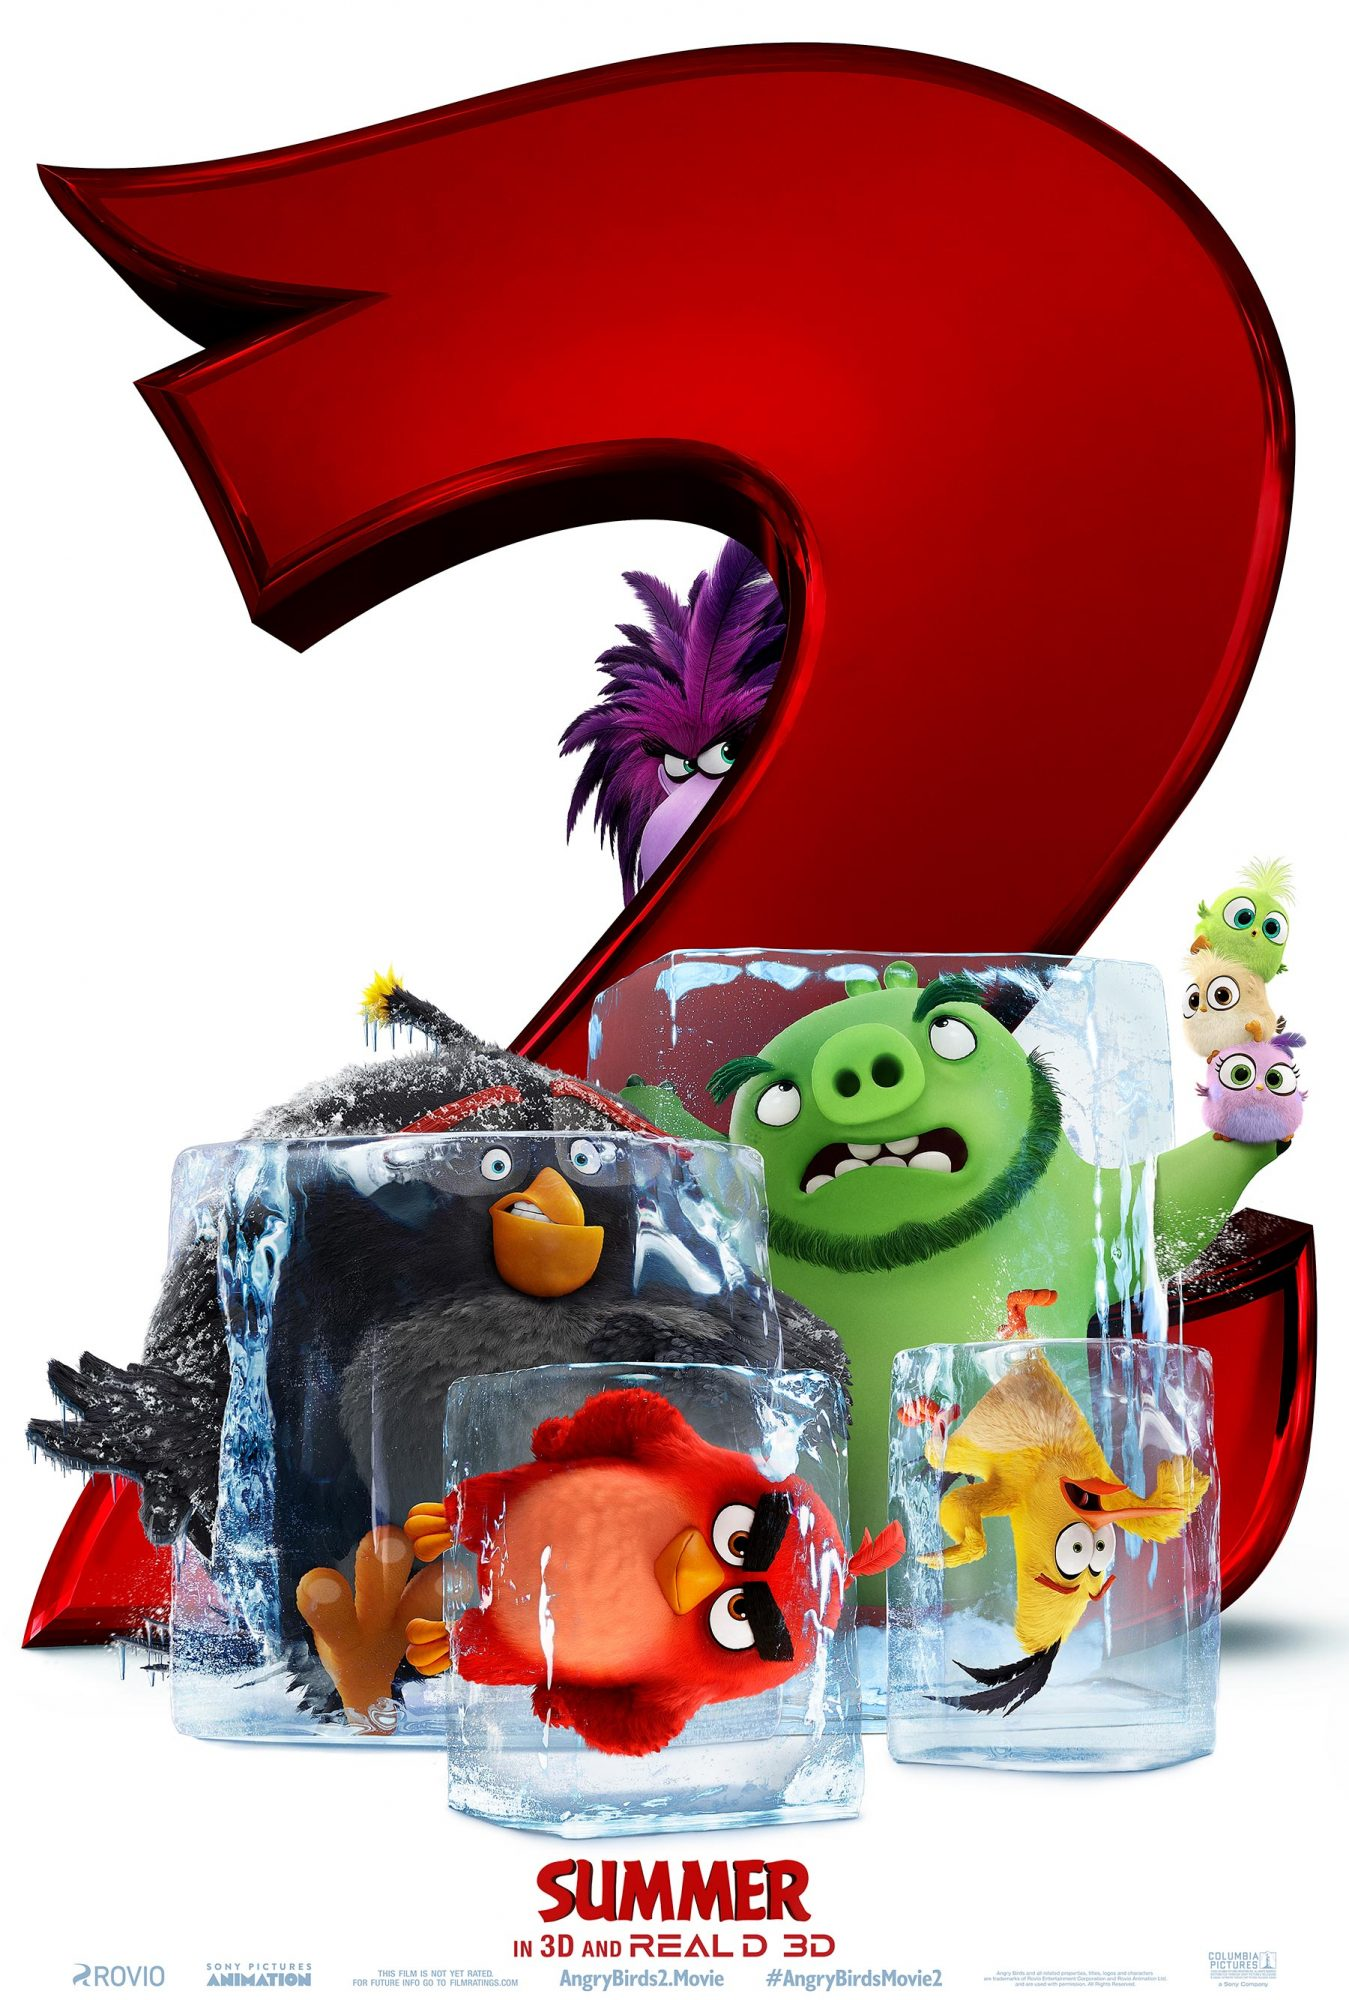 THE ANGRY BIRDS MOVIE 2 movie posterCR: Sony Pictures Entertainment